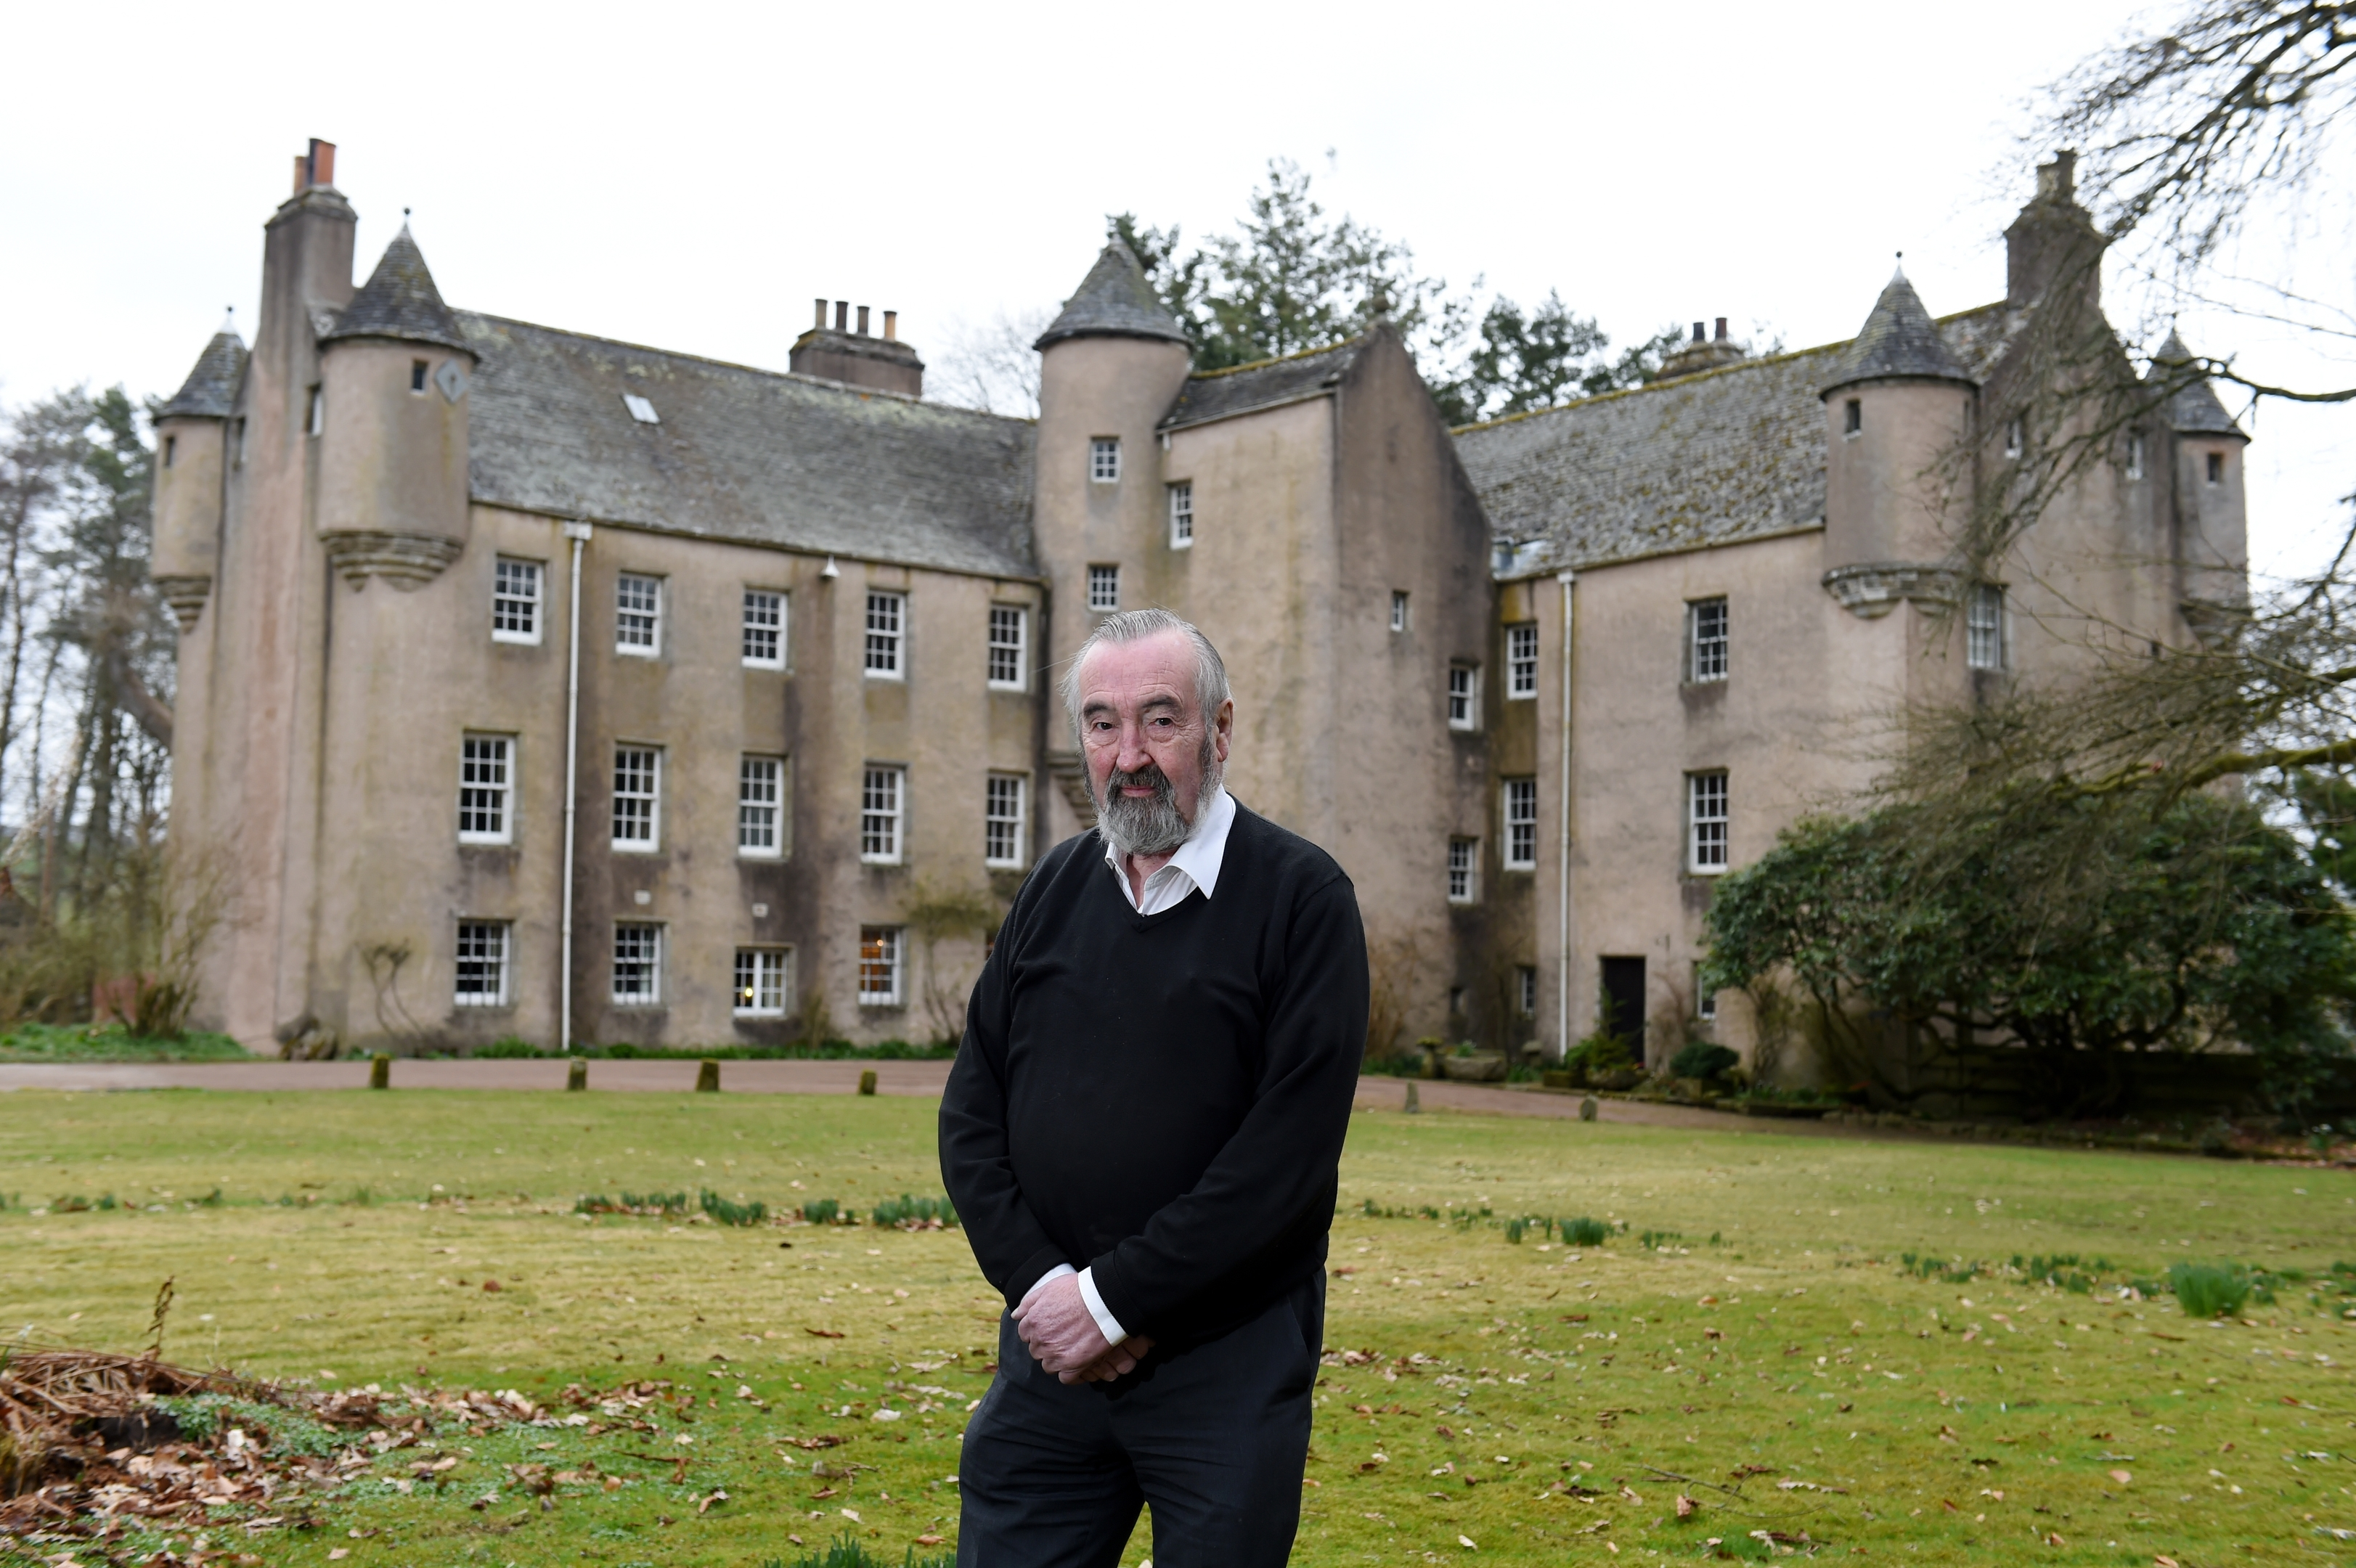 John McMurtrie of Balbithan House, Kintore, Inverurie.